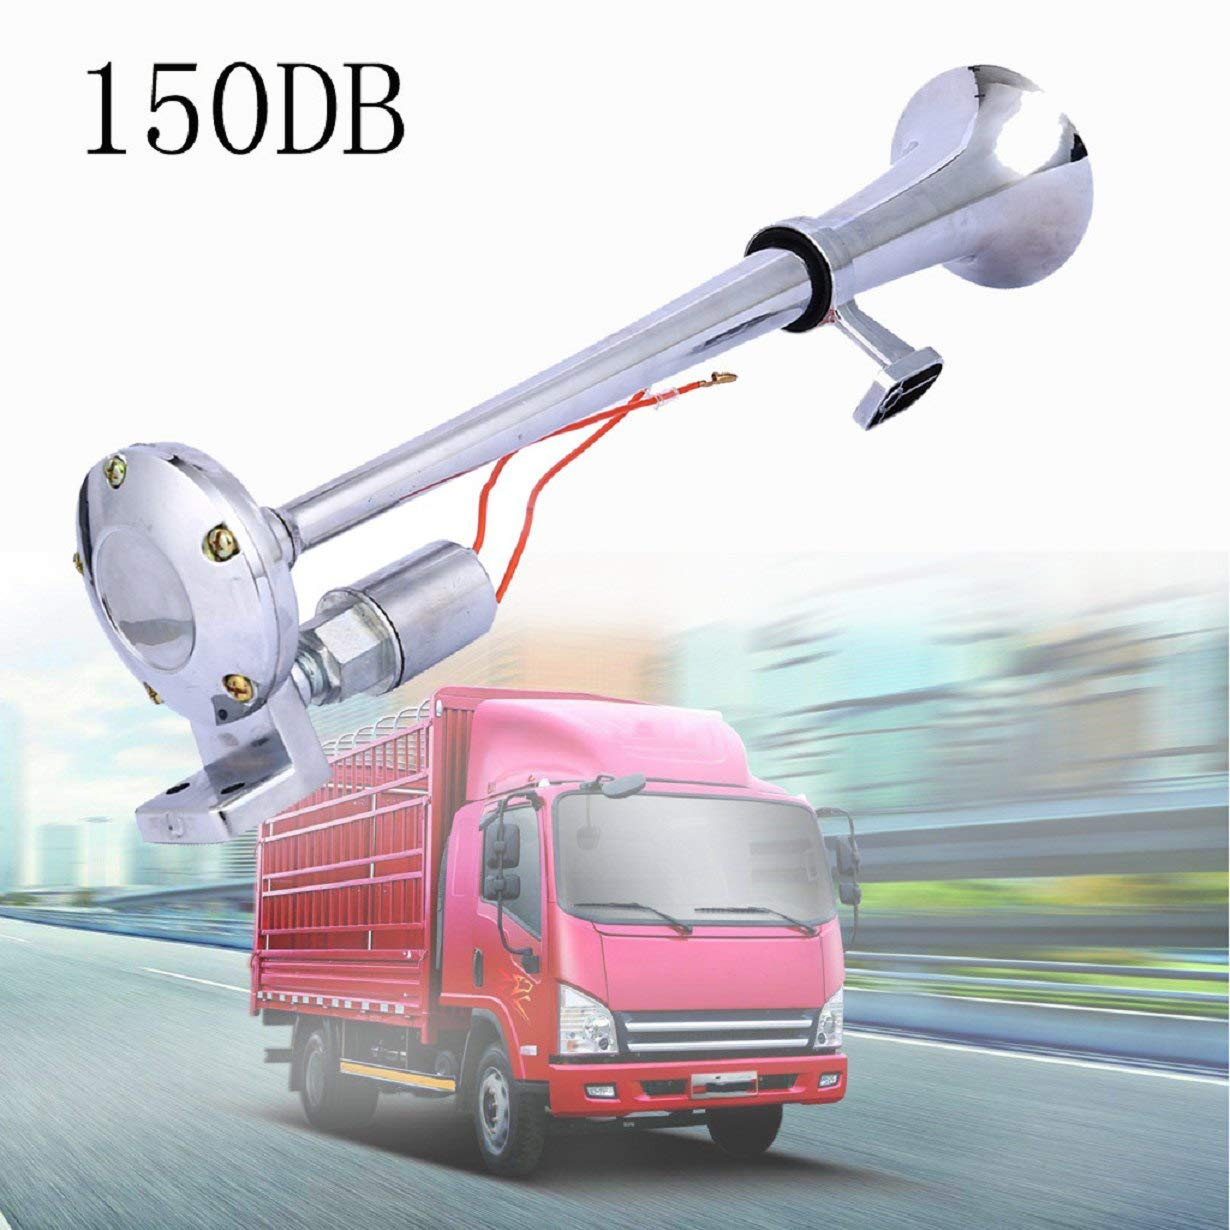 AUTOLOVER Air Horn Loud 150DB Single Trumpet Air Horn Premium Quality Air Horn Kit for Truck Boat SUV Train with Compressor Powerful